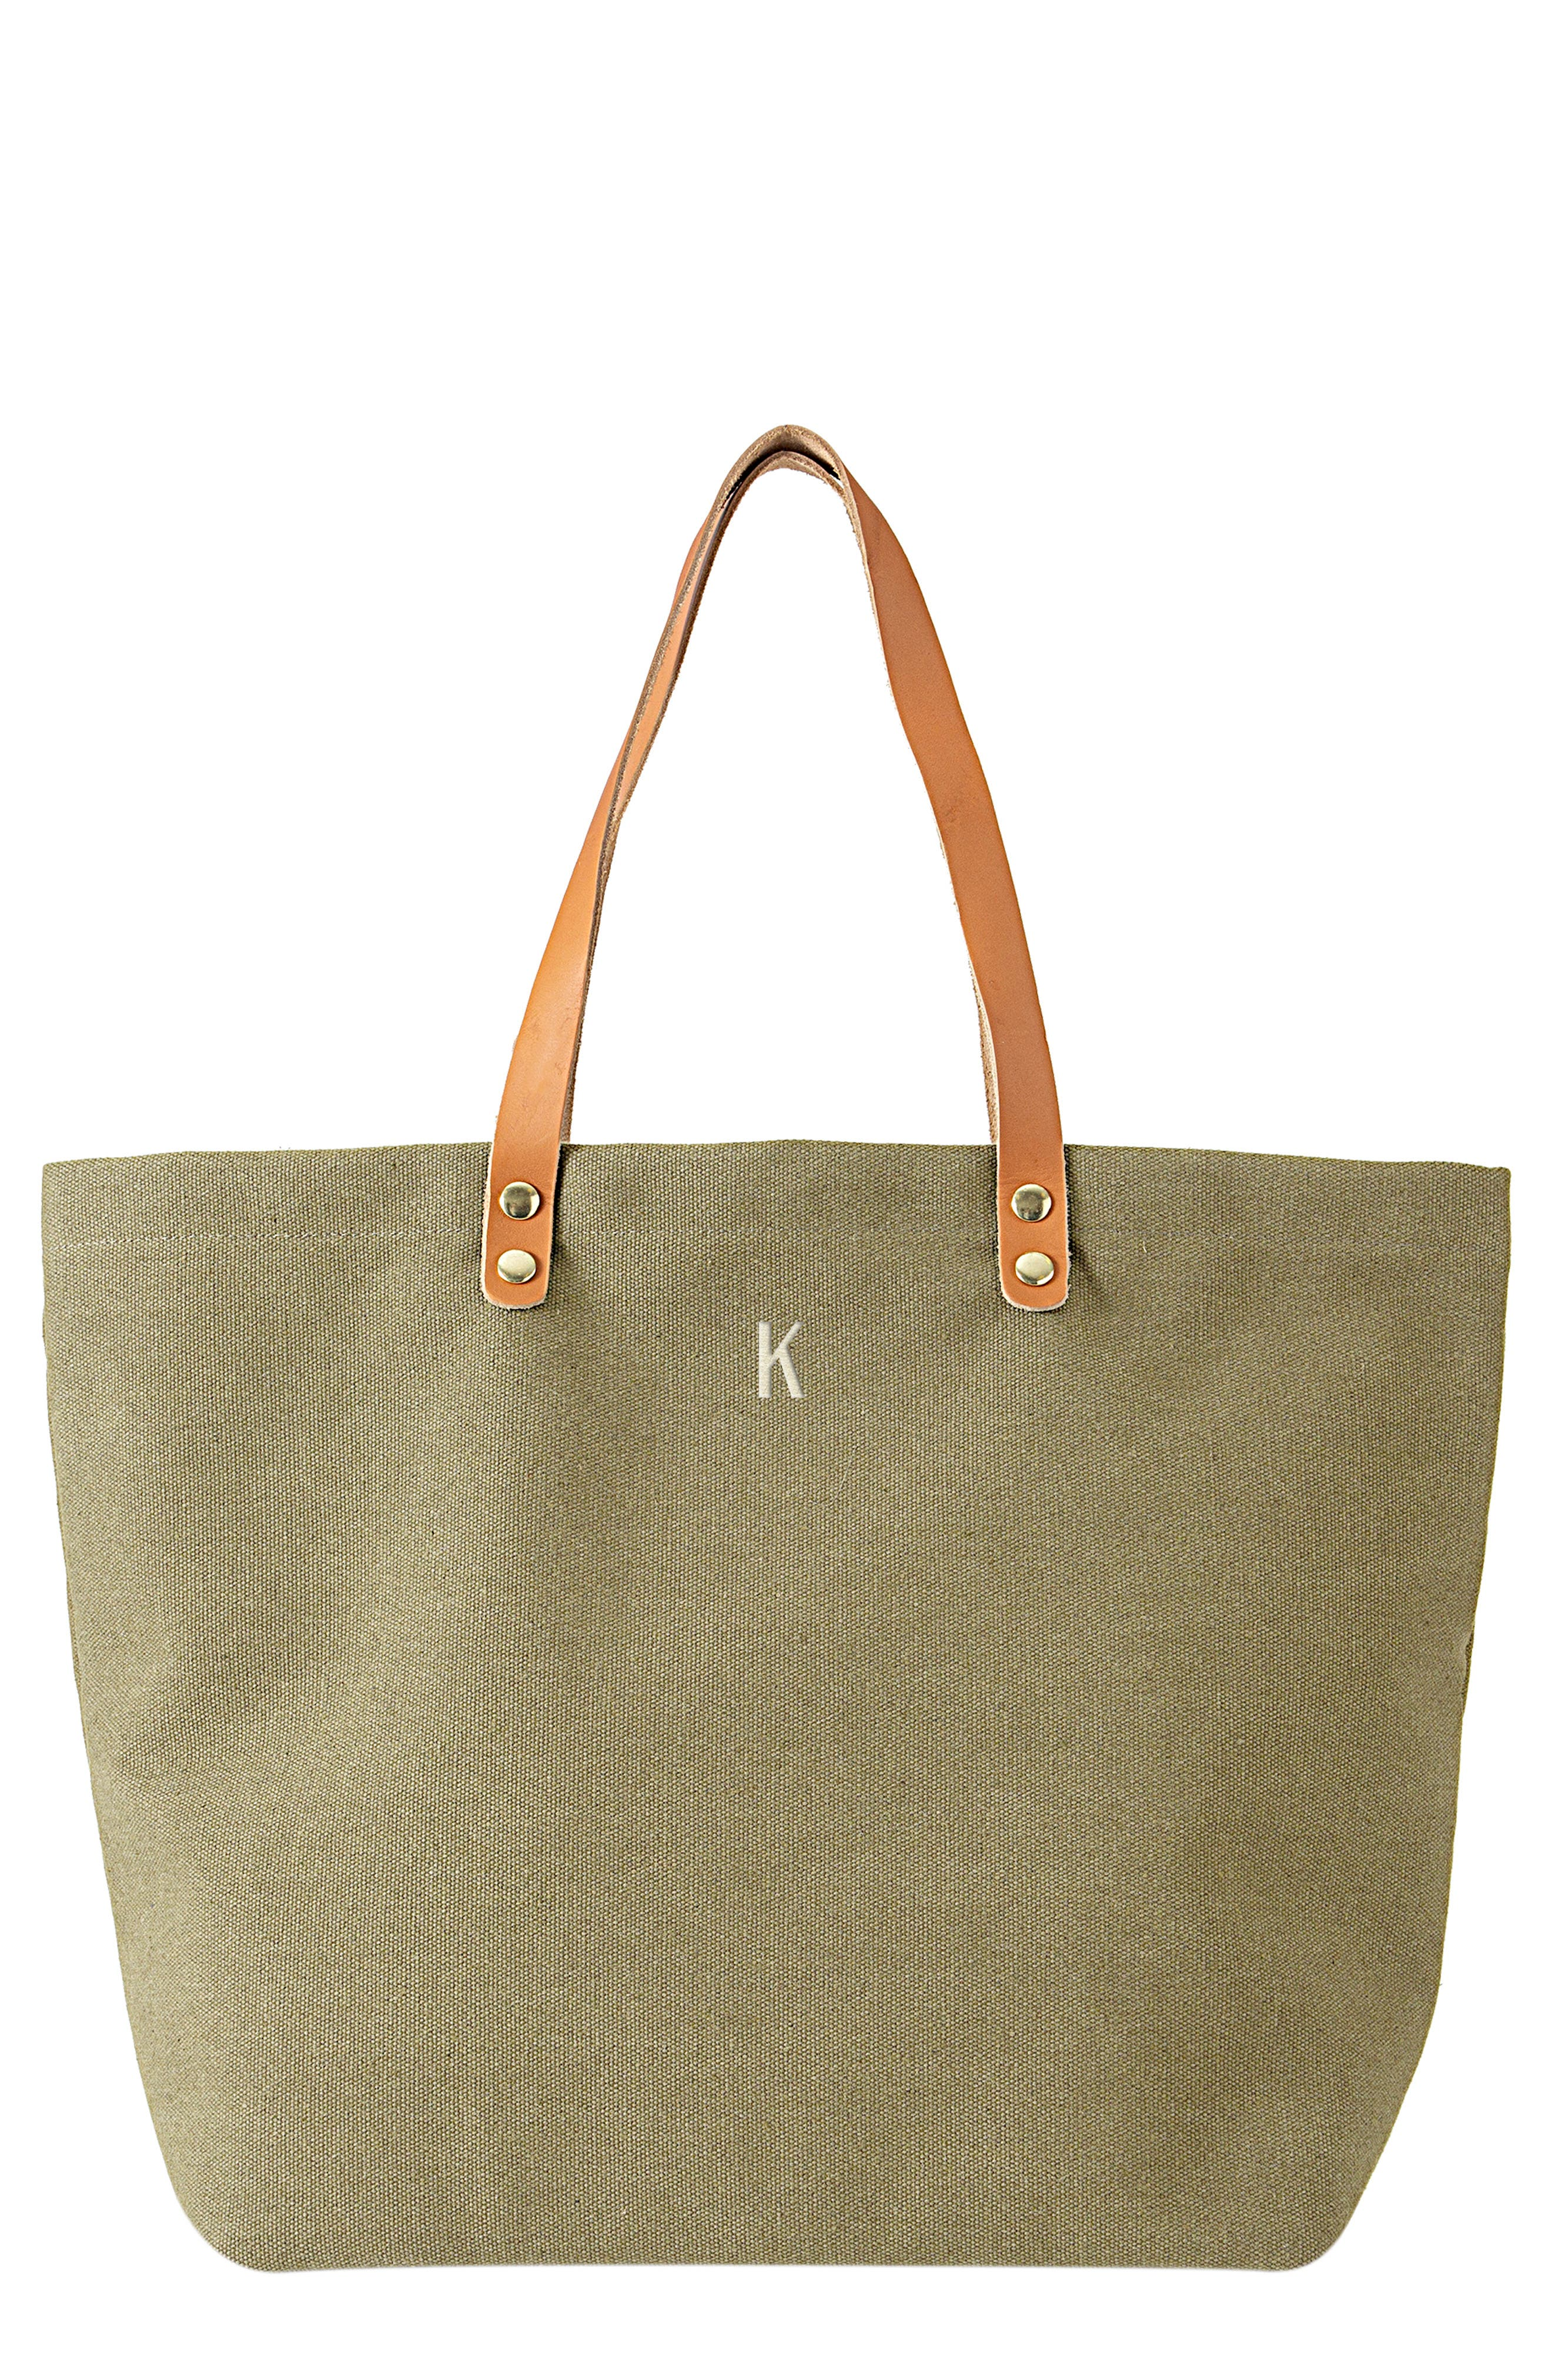 Monogram Washed Canvas Tote